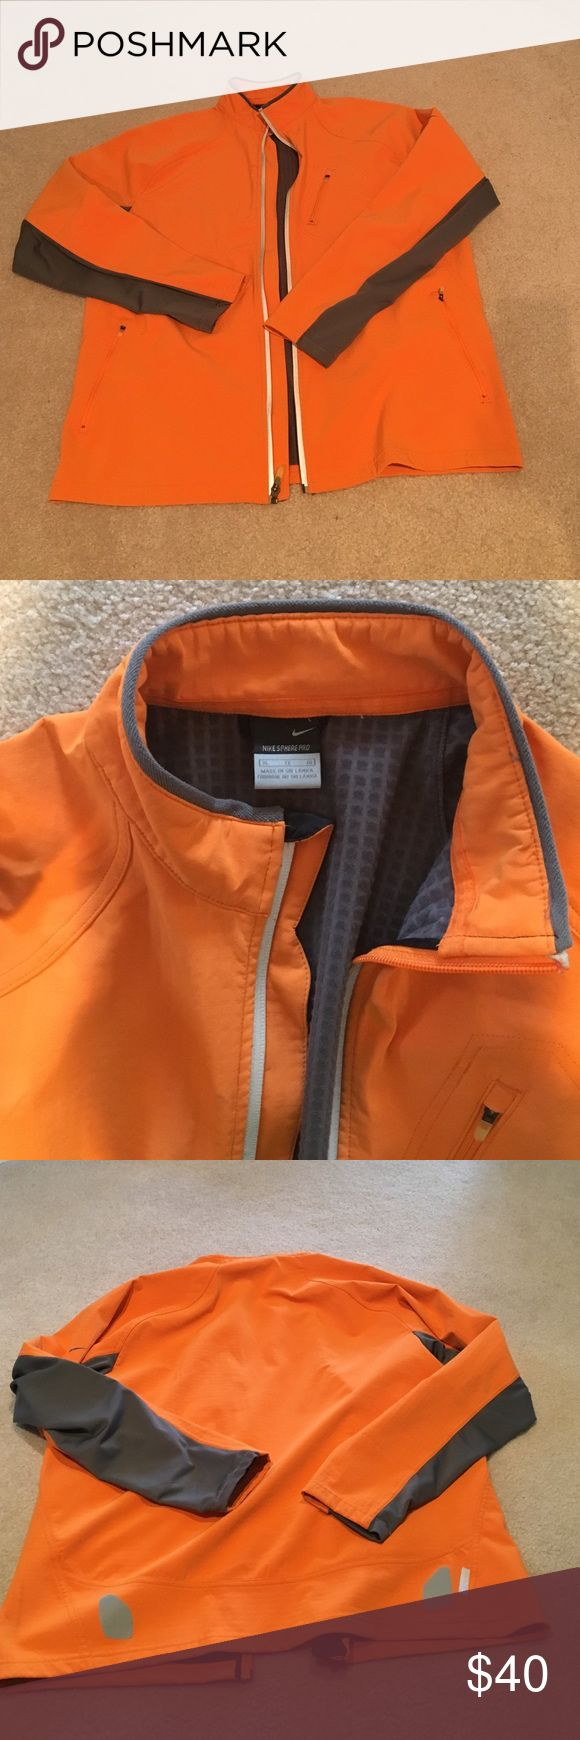 Men's Nike Golf Jacket Nike Sphere Pro golf size XL jacket. Good condition, worn a few times. A little marking on bottom side as shown in picture. Nike Jackets & Coats